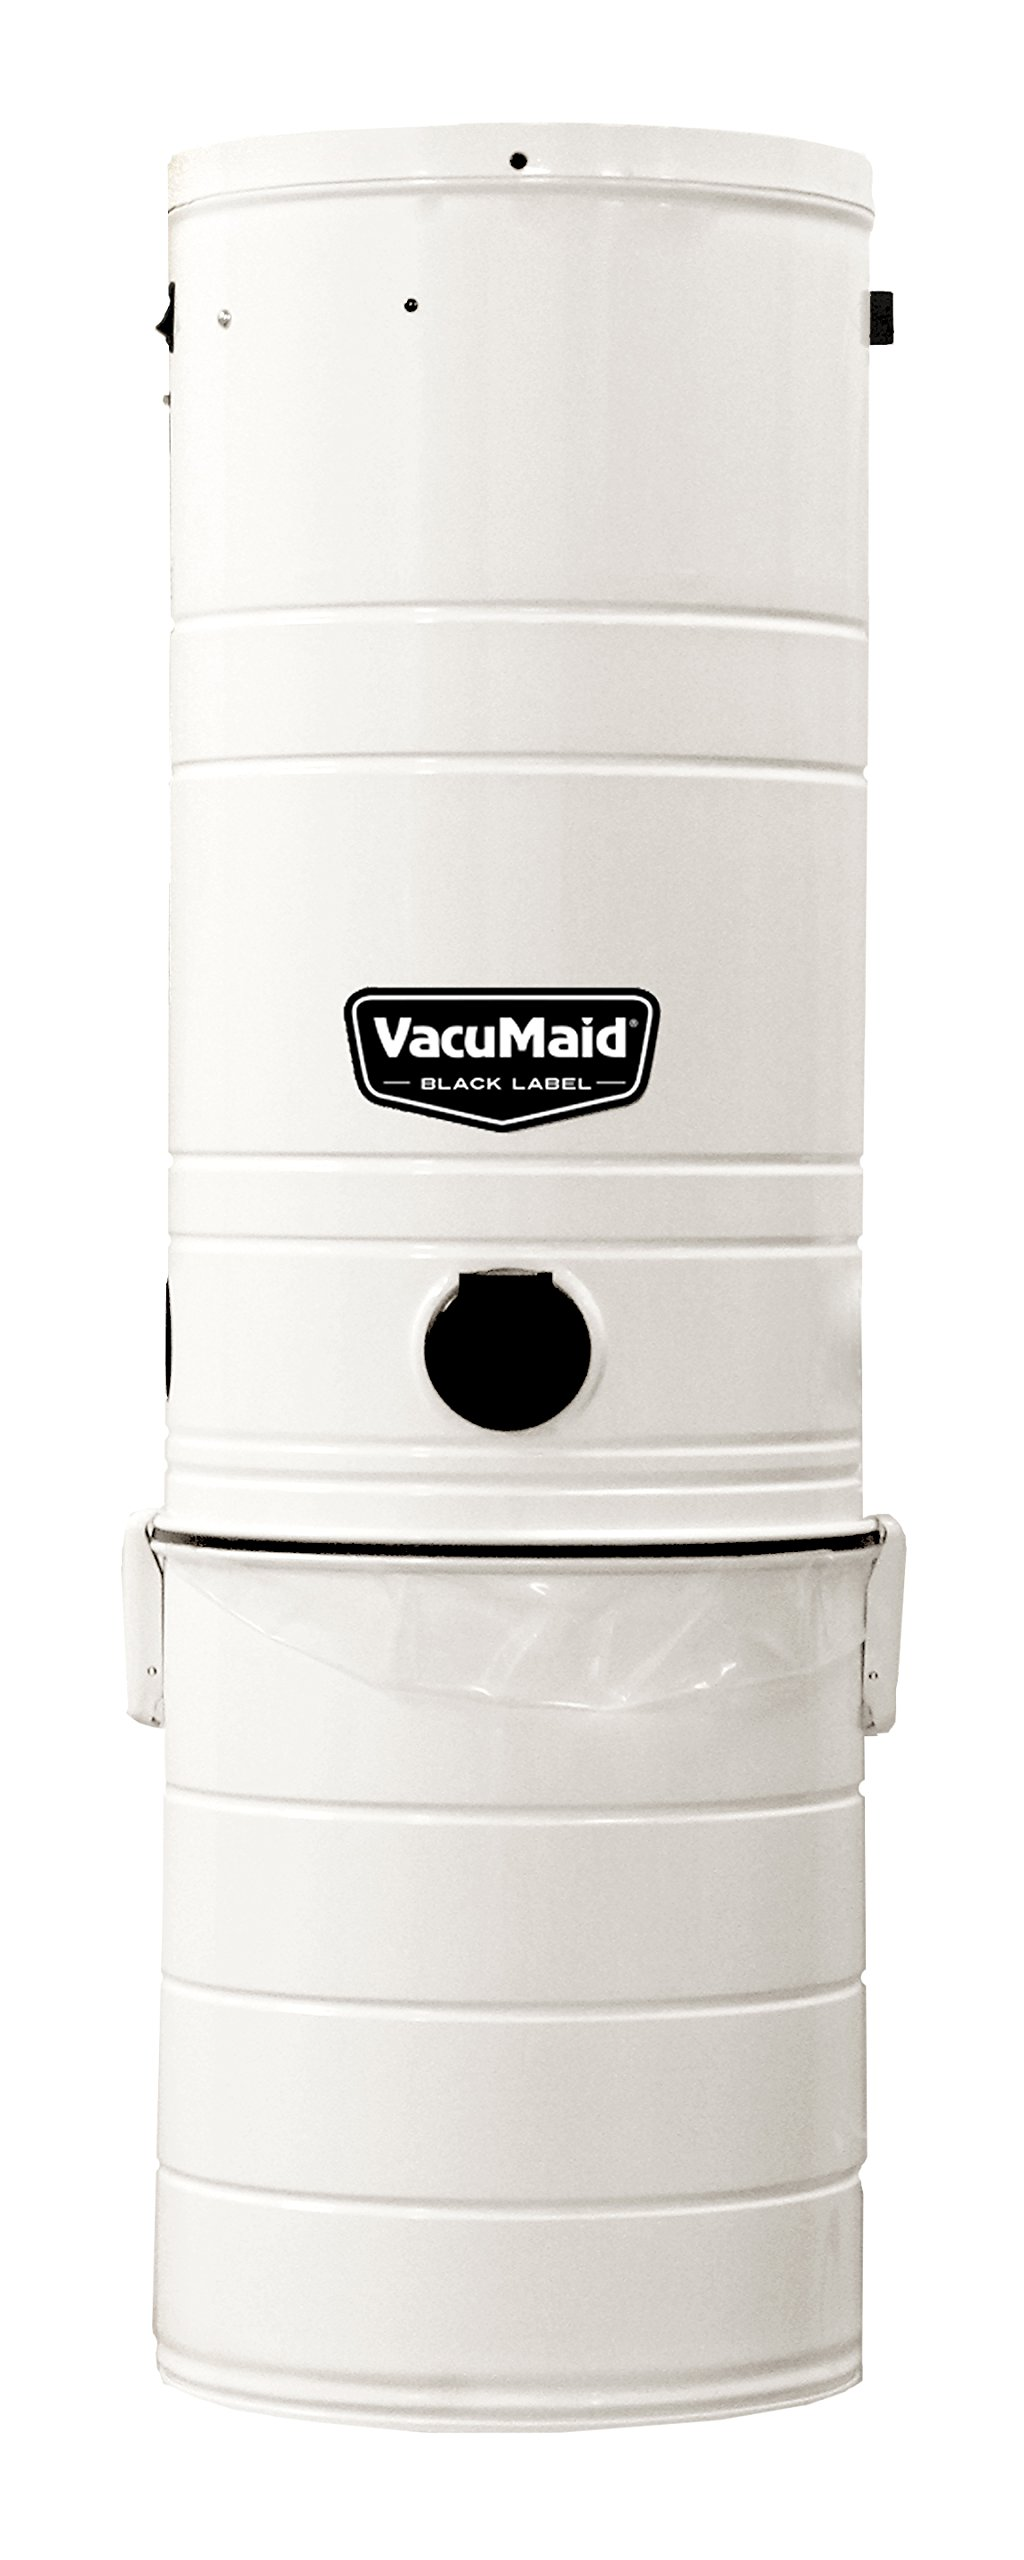 VacuMaid BL12 Permanent Inverted Bag Central Vacuum for Homes up to 4,000 sq ft